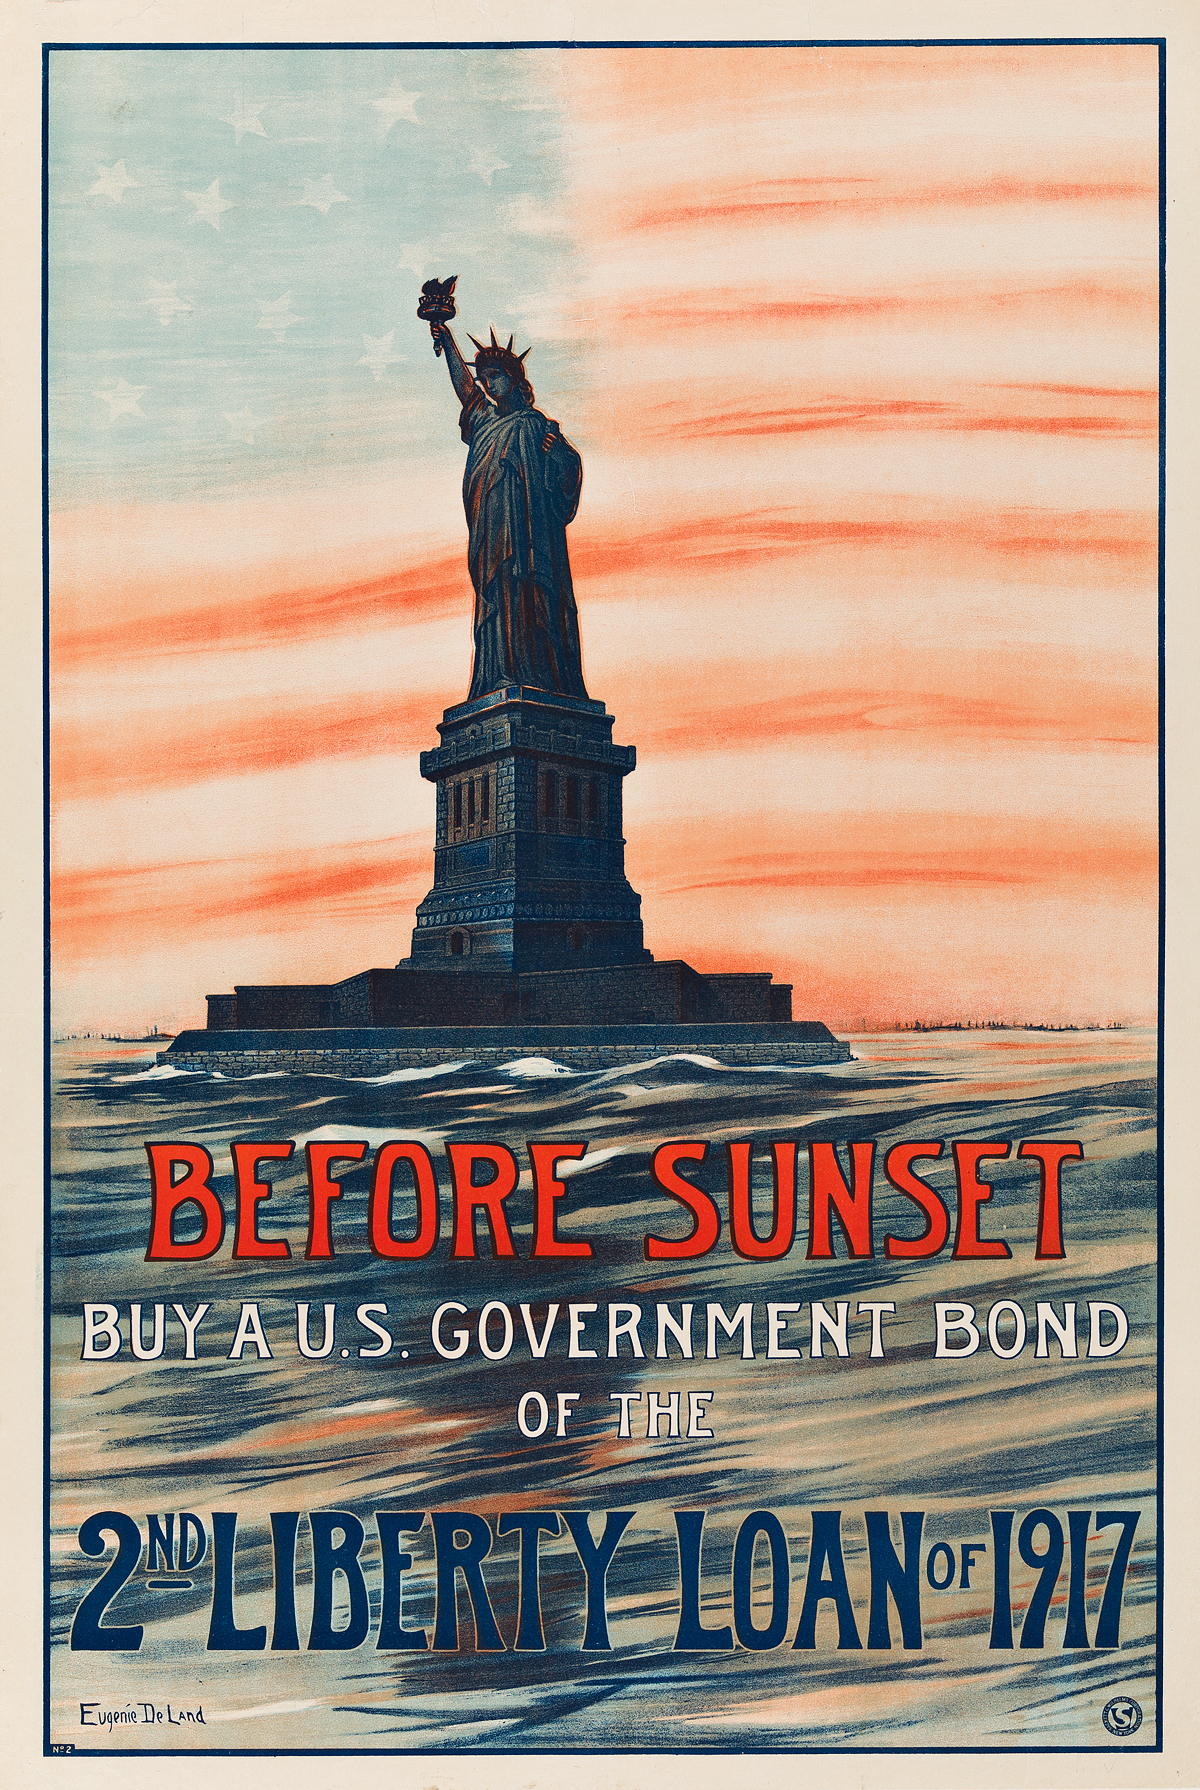 EUGENIE-DELAND-(DATES-UNKNOWN)-BEFORE-SUNSET--BUY-A-US-GOVERNMENT-BOND-OF-THE-2ND-LIBERTY-LOAN-OF-1917-1917-29x19-inches-75x50-c